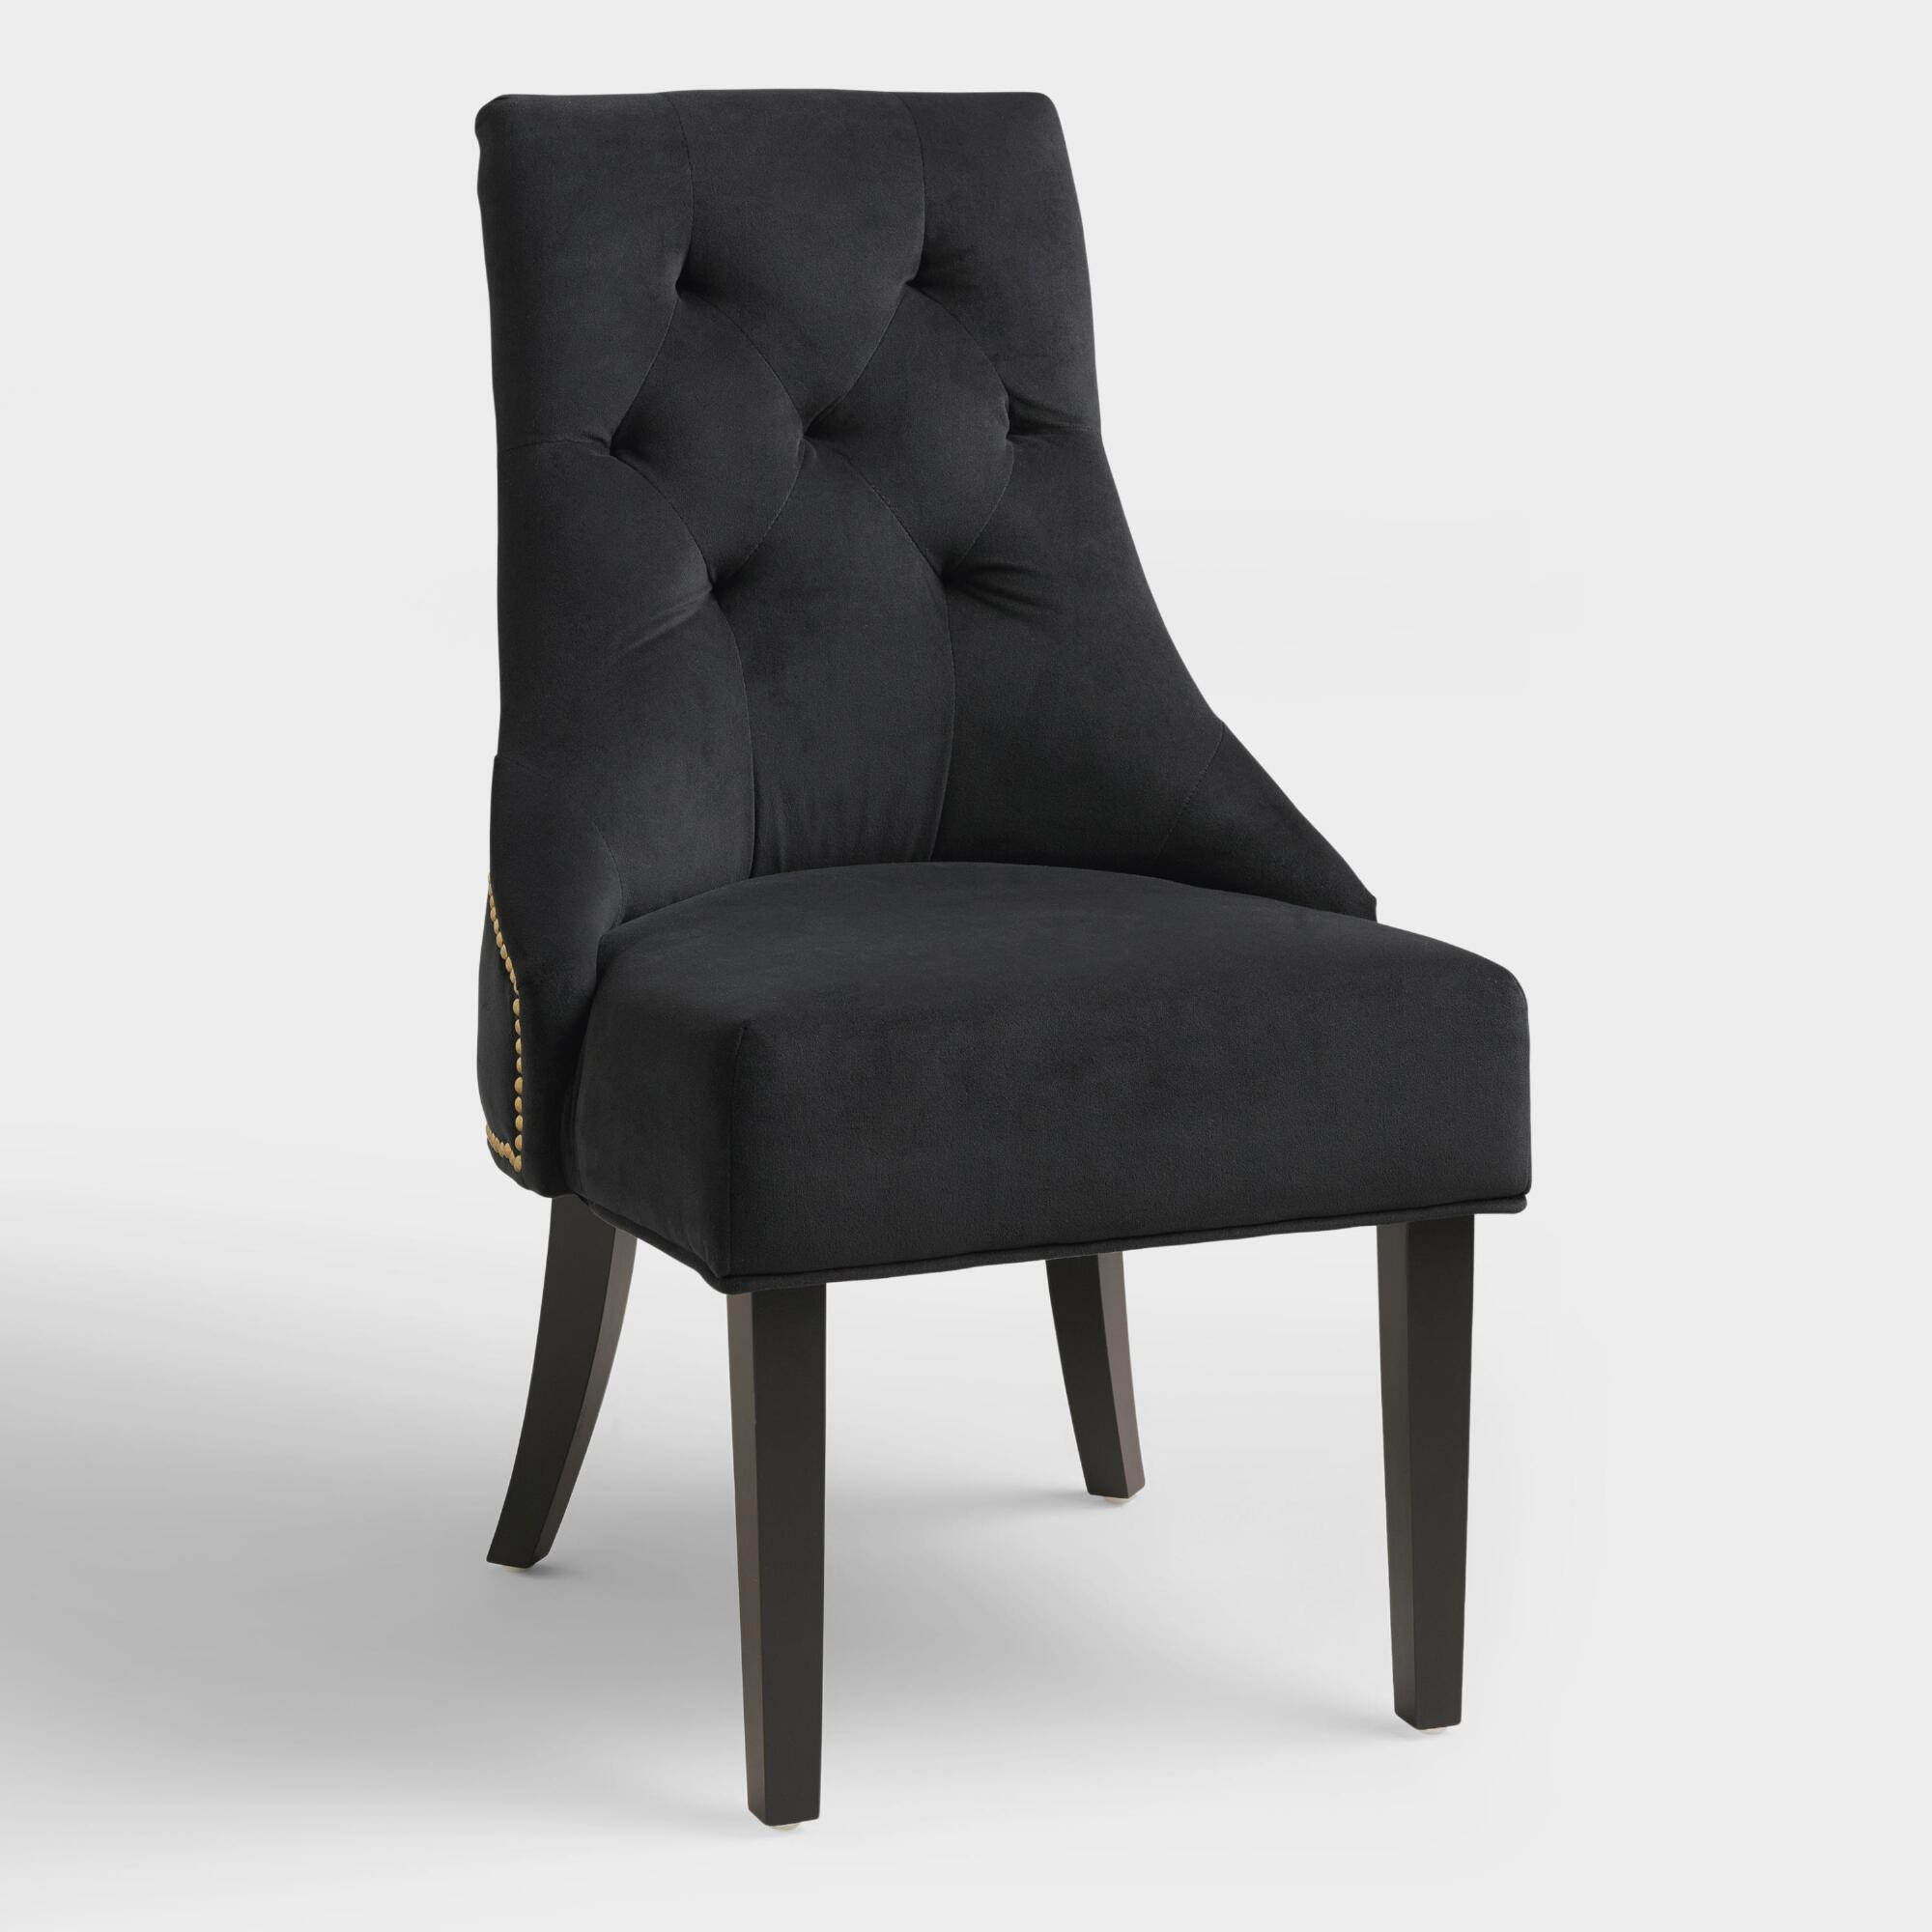 Best ideas about Black Dining Room Chairs . Save or Pin Black Lydia Dining Chairs Set of 2 Now.